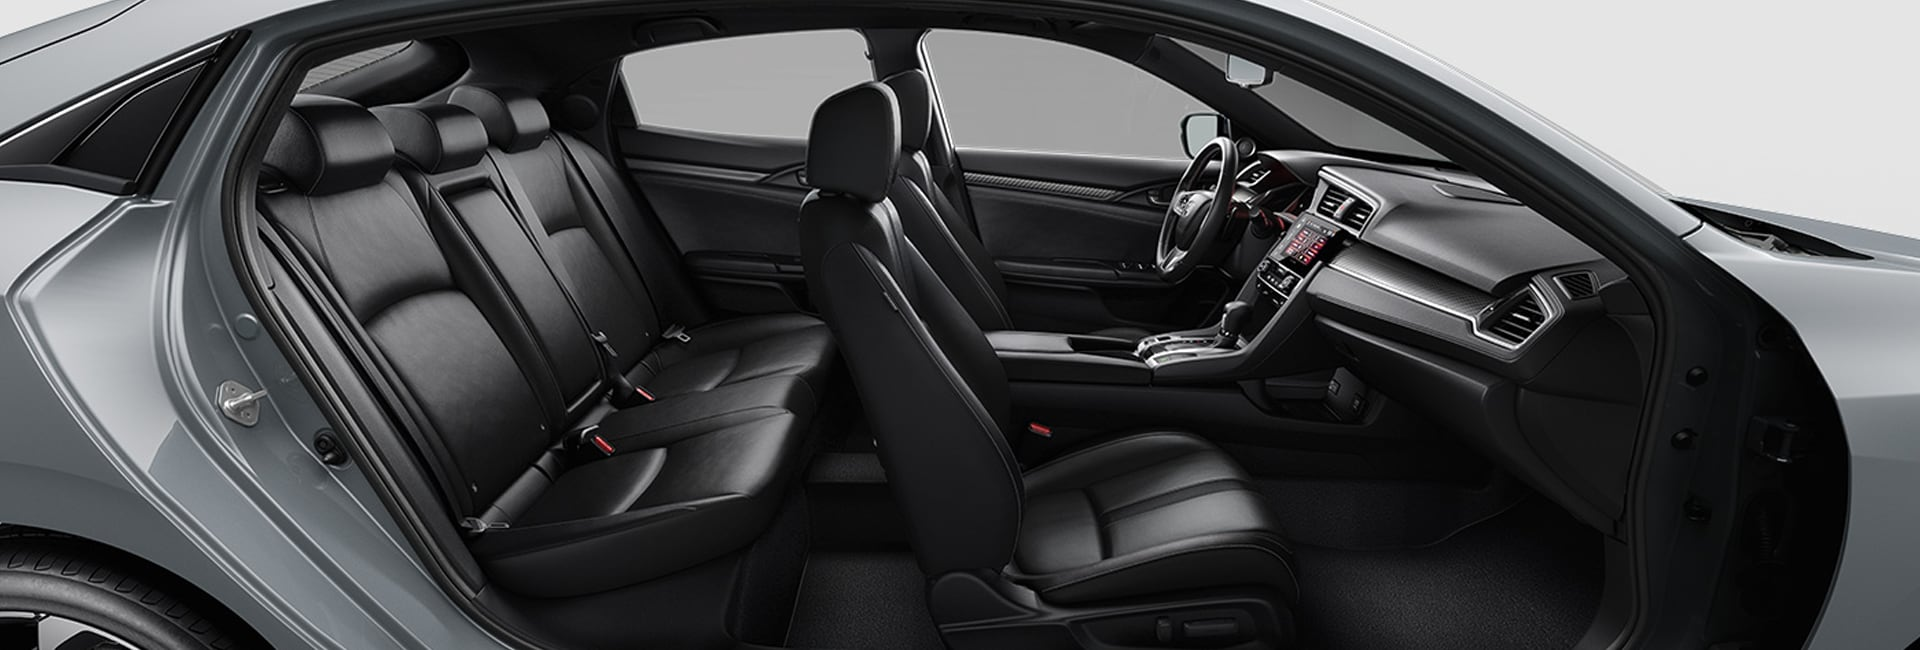 2017 Honda Civic Hatchback Interior Features